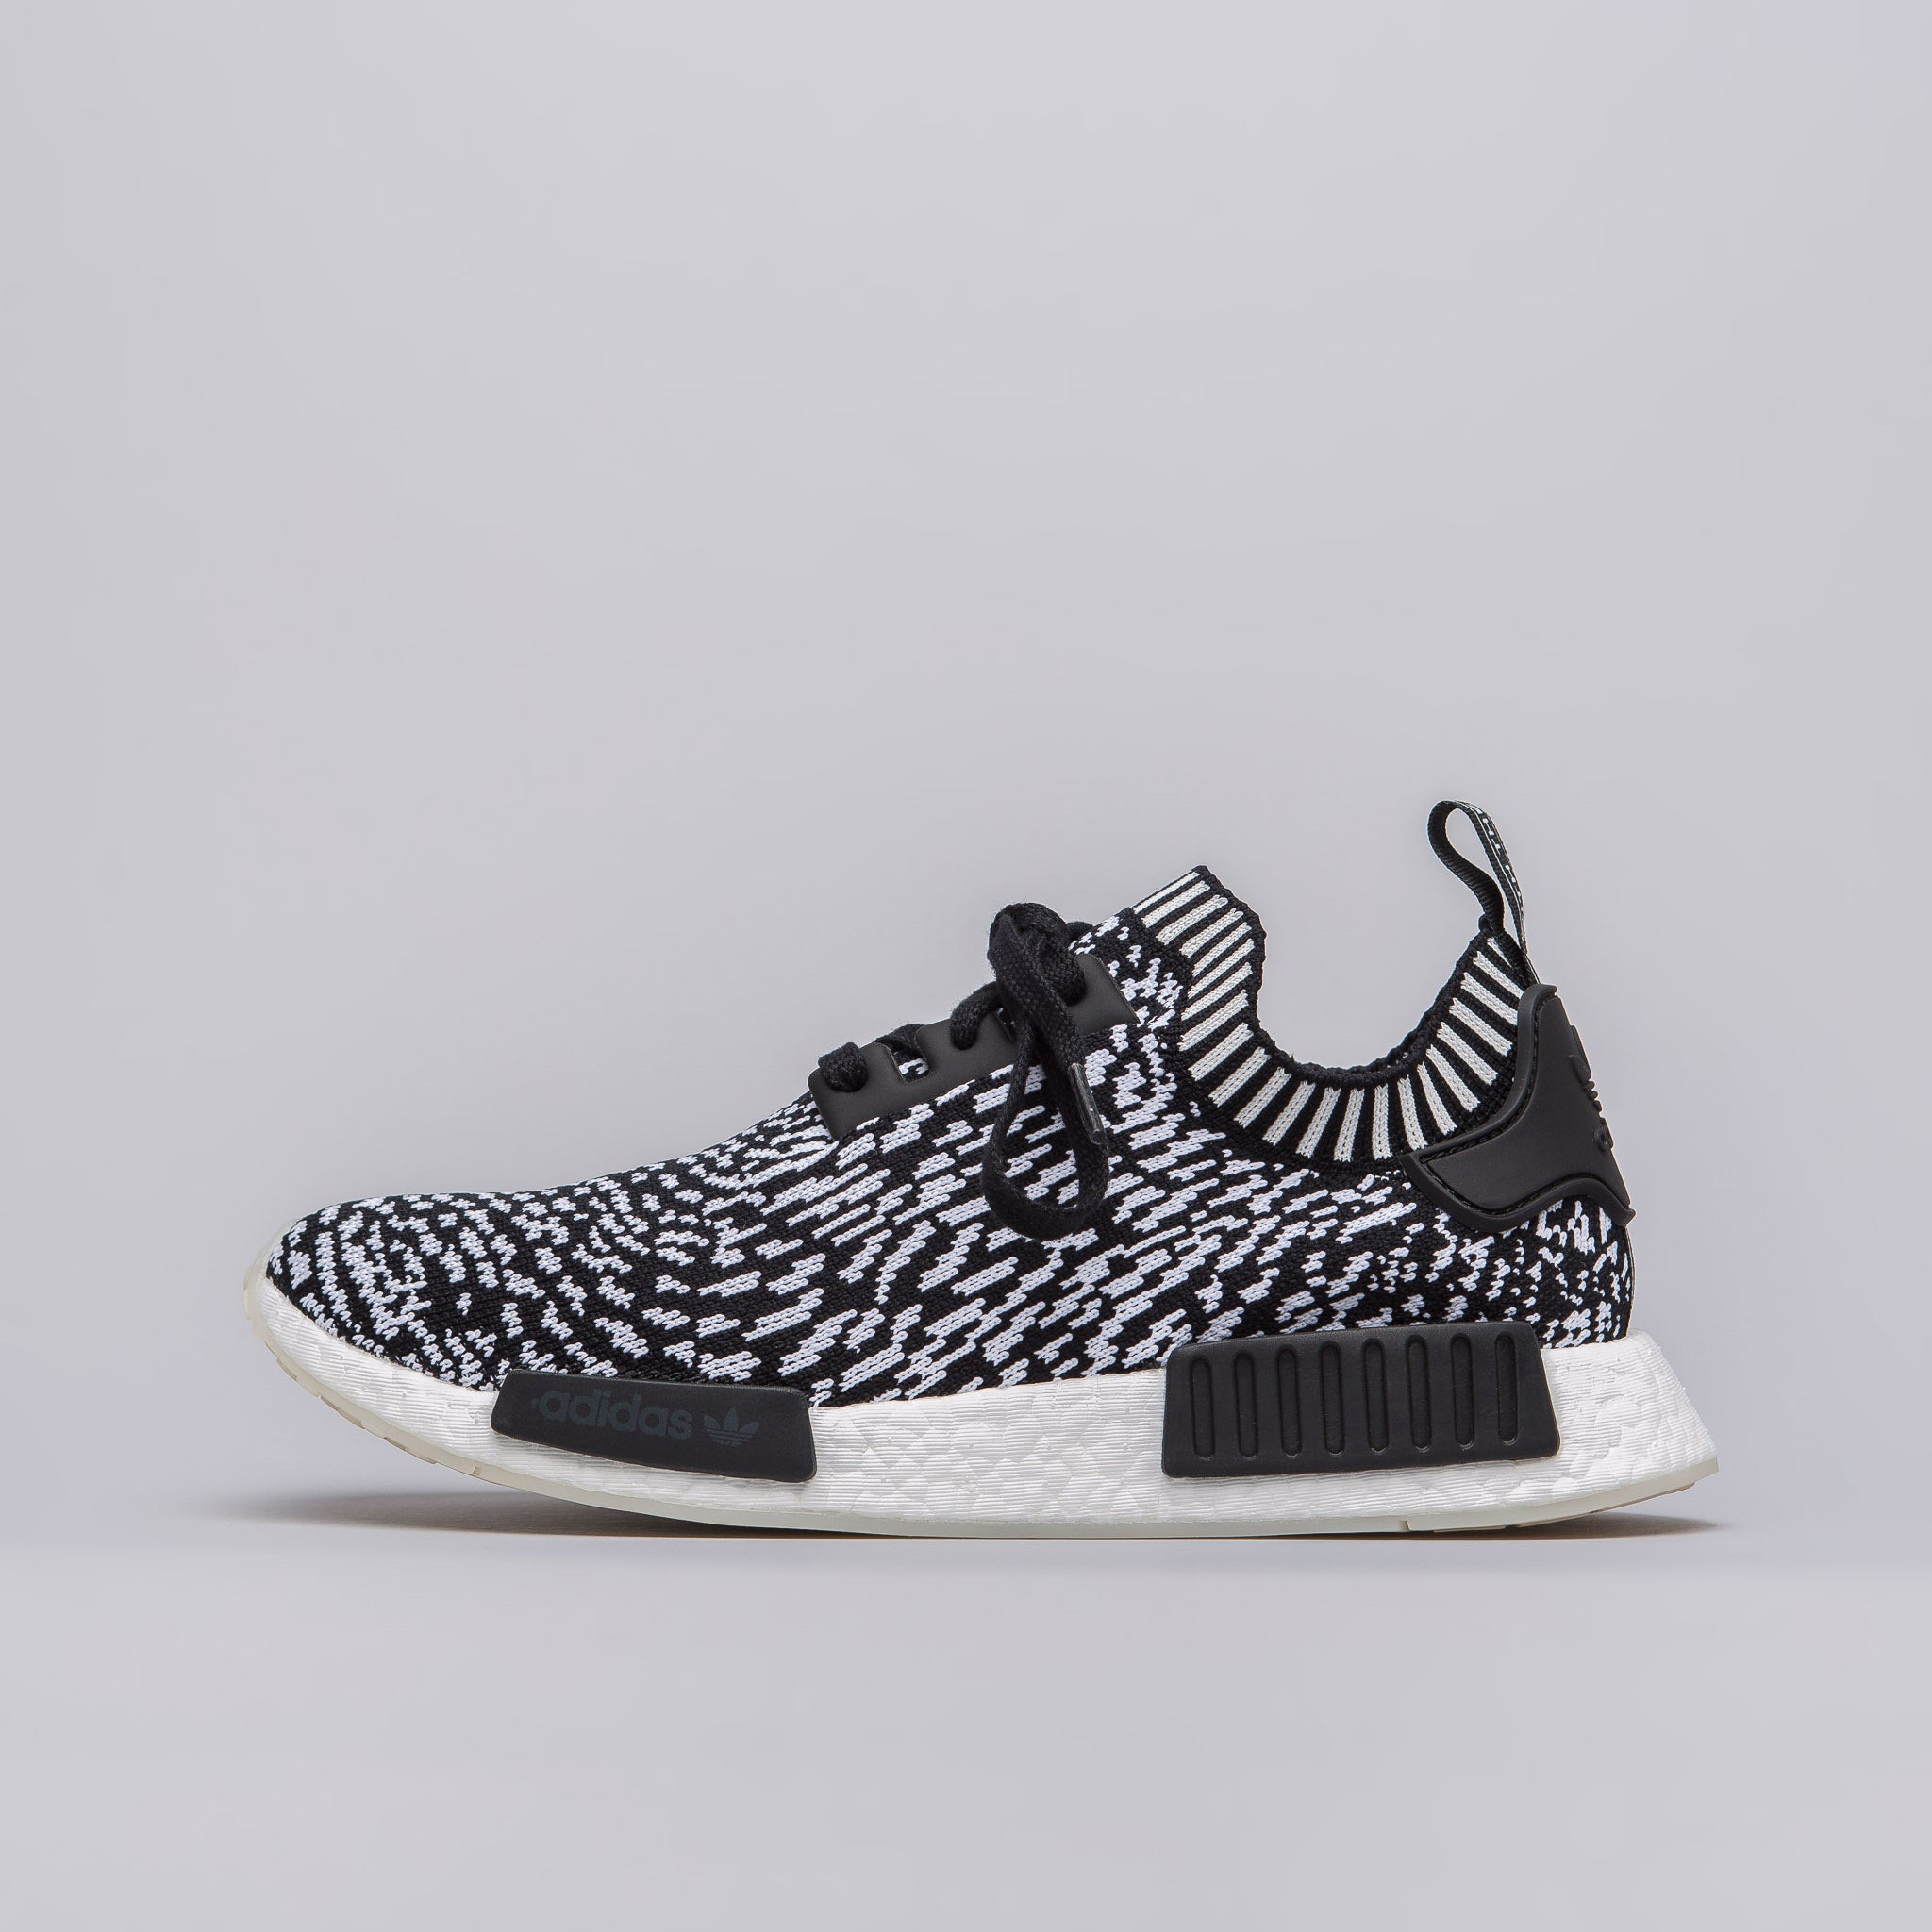 Adidas NMD R1 LV ZIP trend shoes BA7263 casual light running